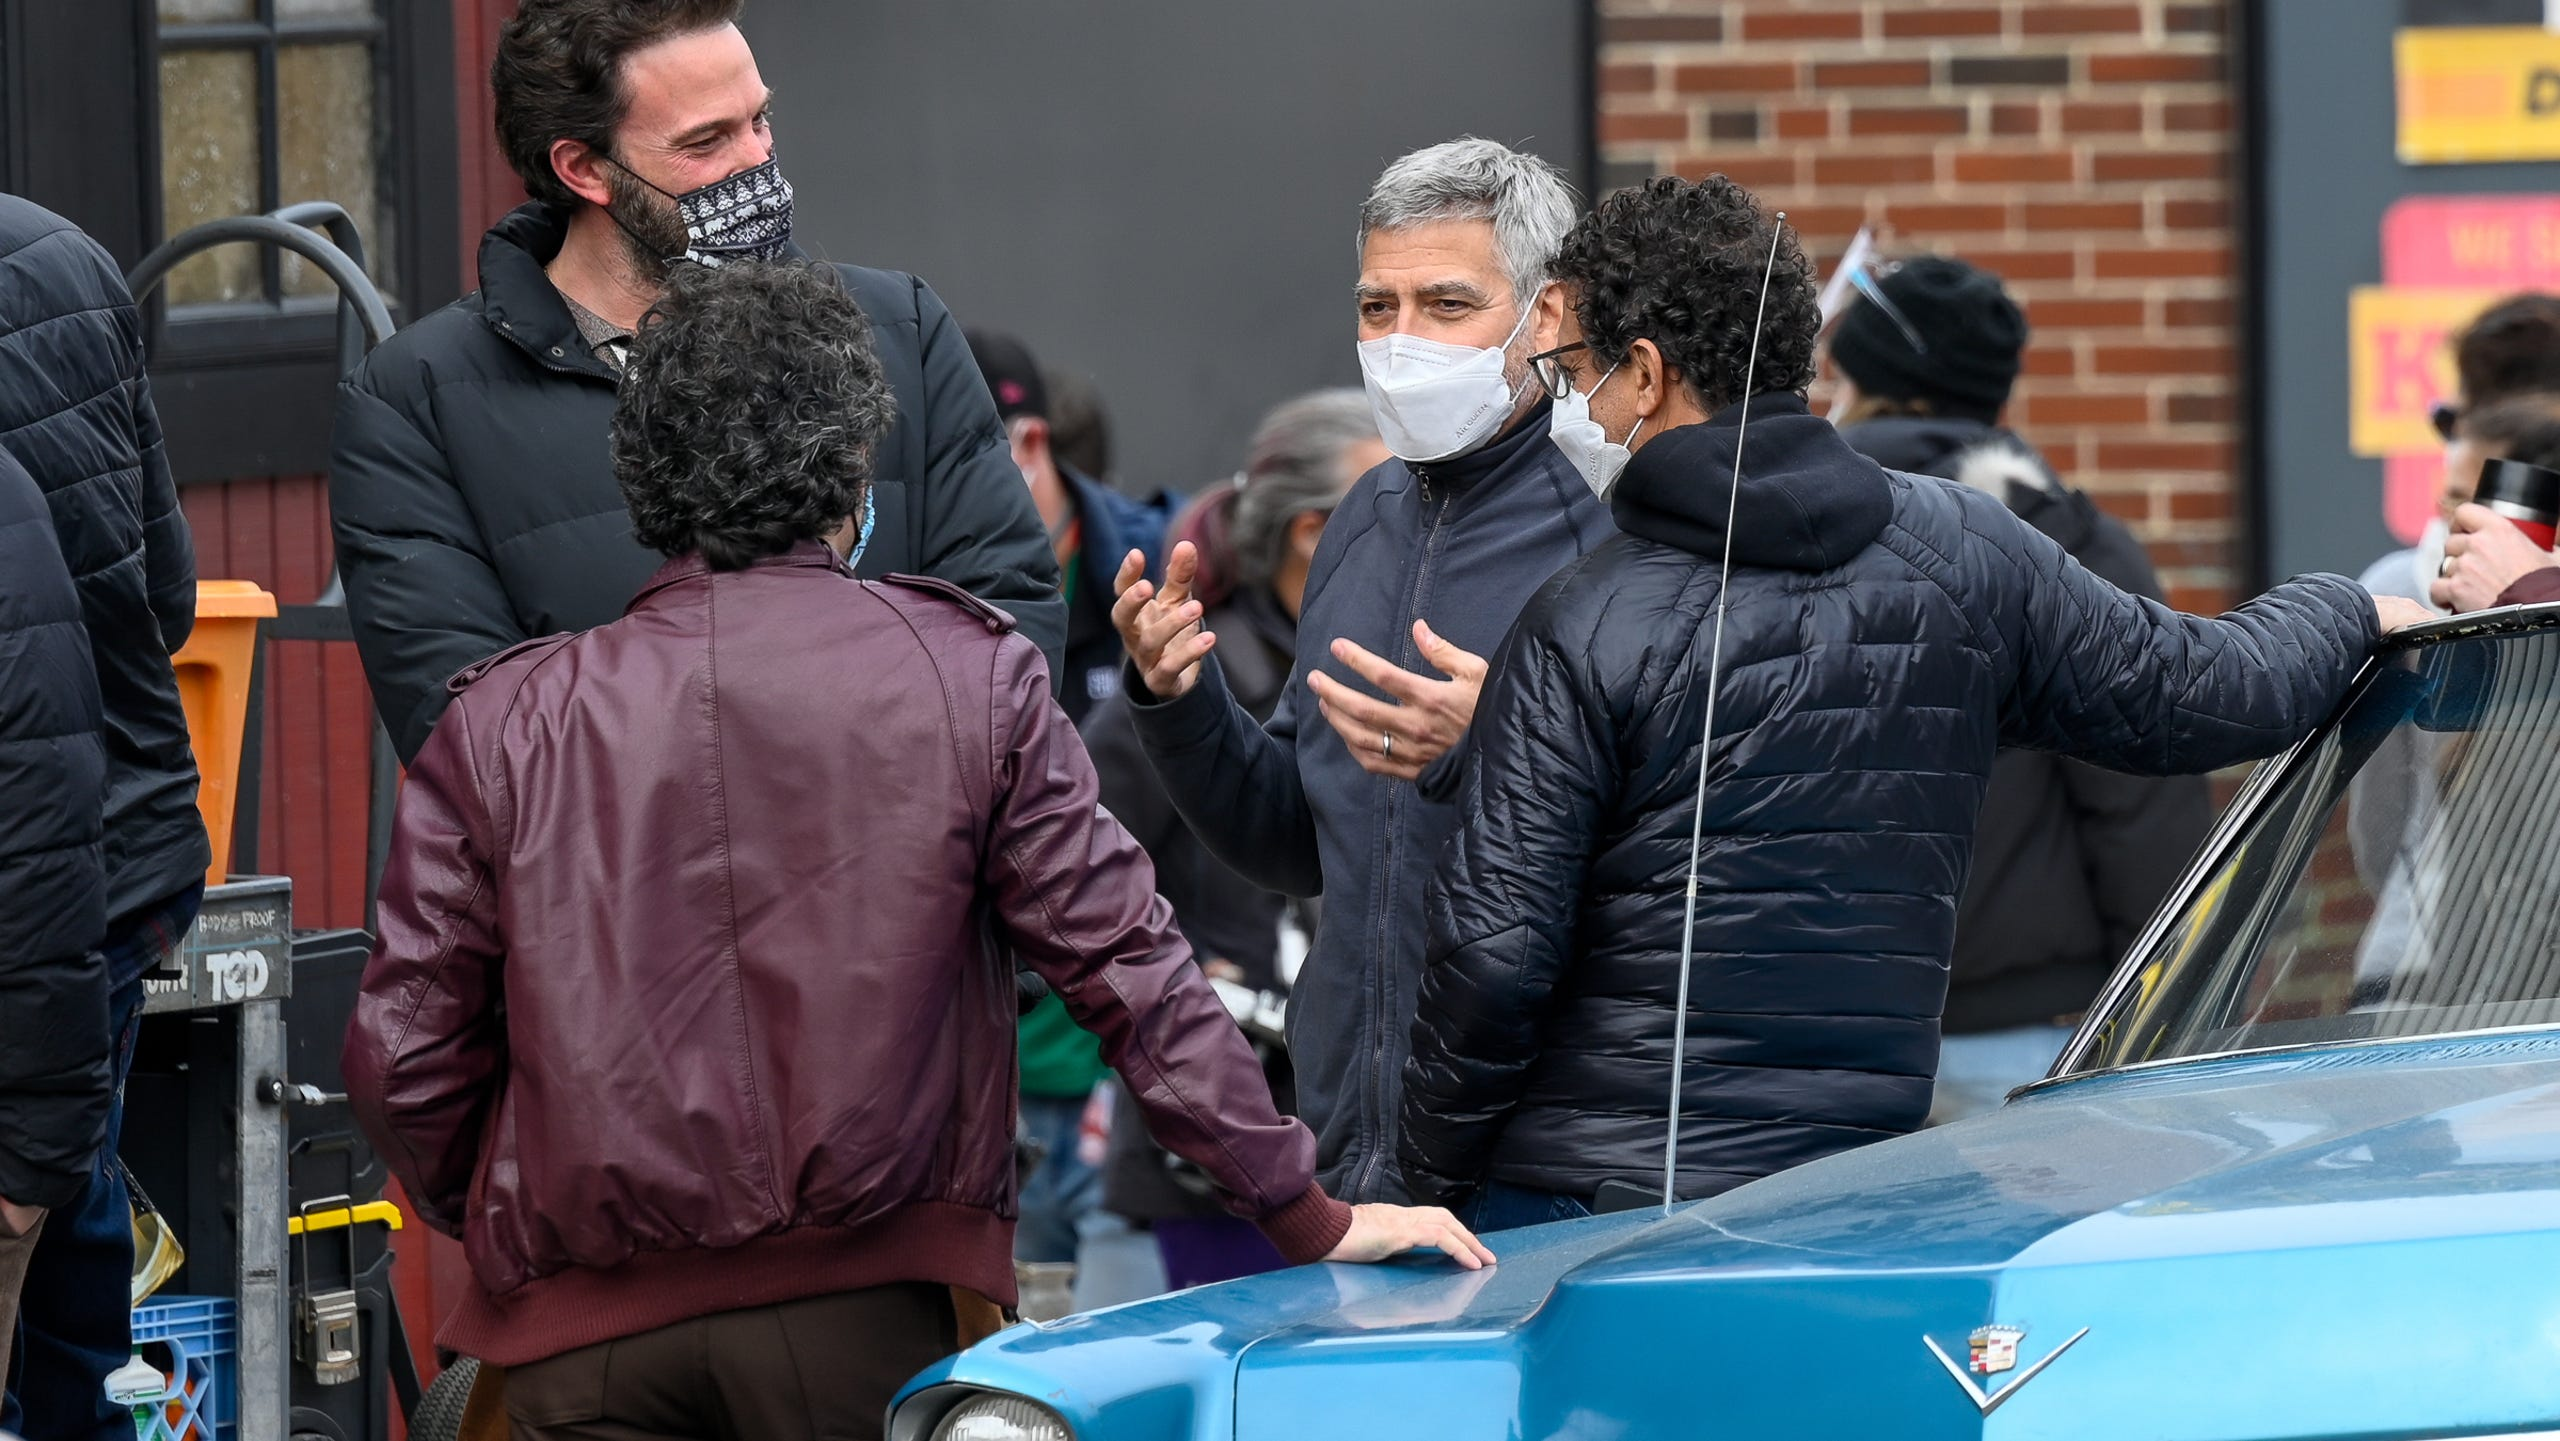 George Clooney due to film scenes of 'The Tender Bar' in downtown Worcester 68abd2fe-01e0-41e7-85dc-d7e986804f82-4654006001p_BEV_thetenderbar4ds